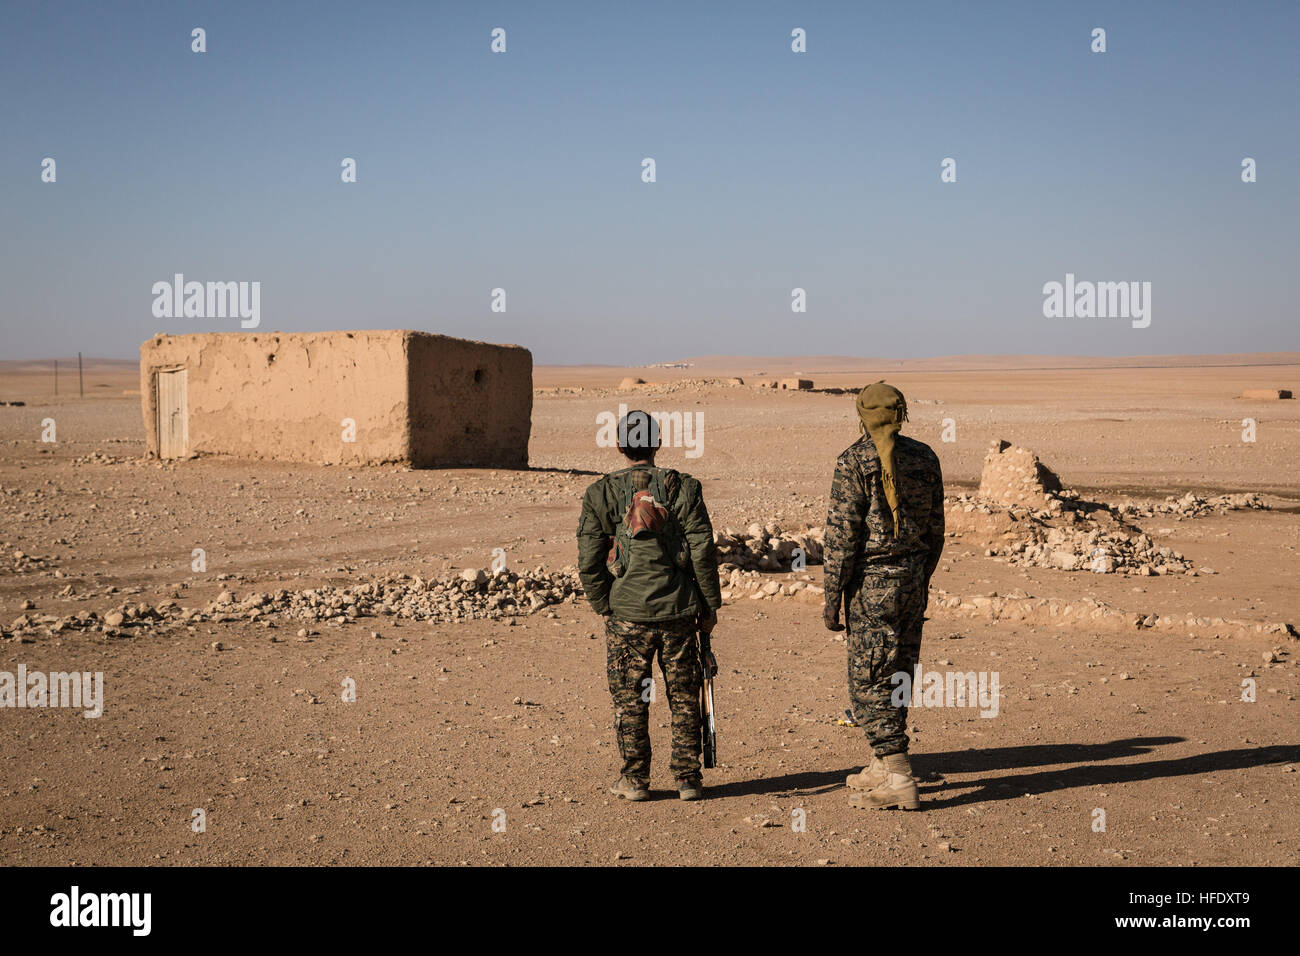 isis fighters raqqa stockfotos isis fighters raqqa bilder alamy. Black Bedroom Furniture Sets. Home Design Ideas